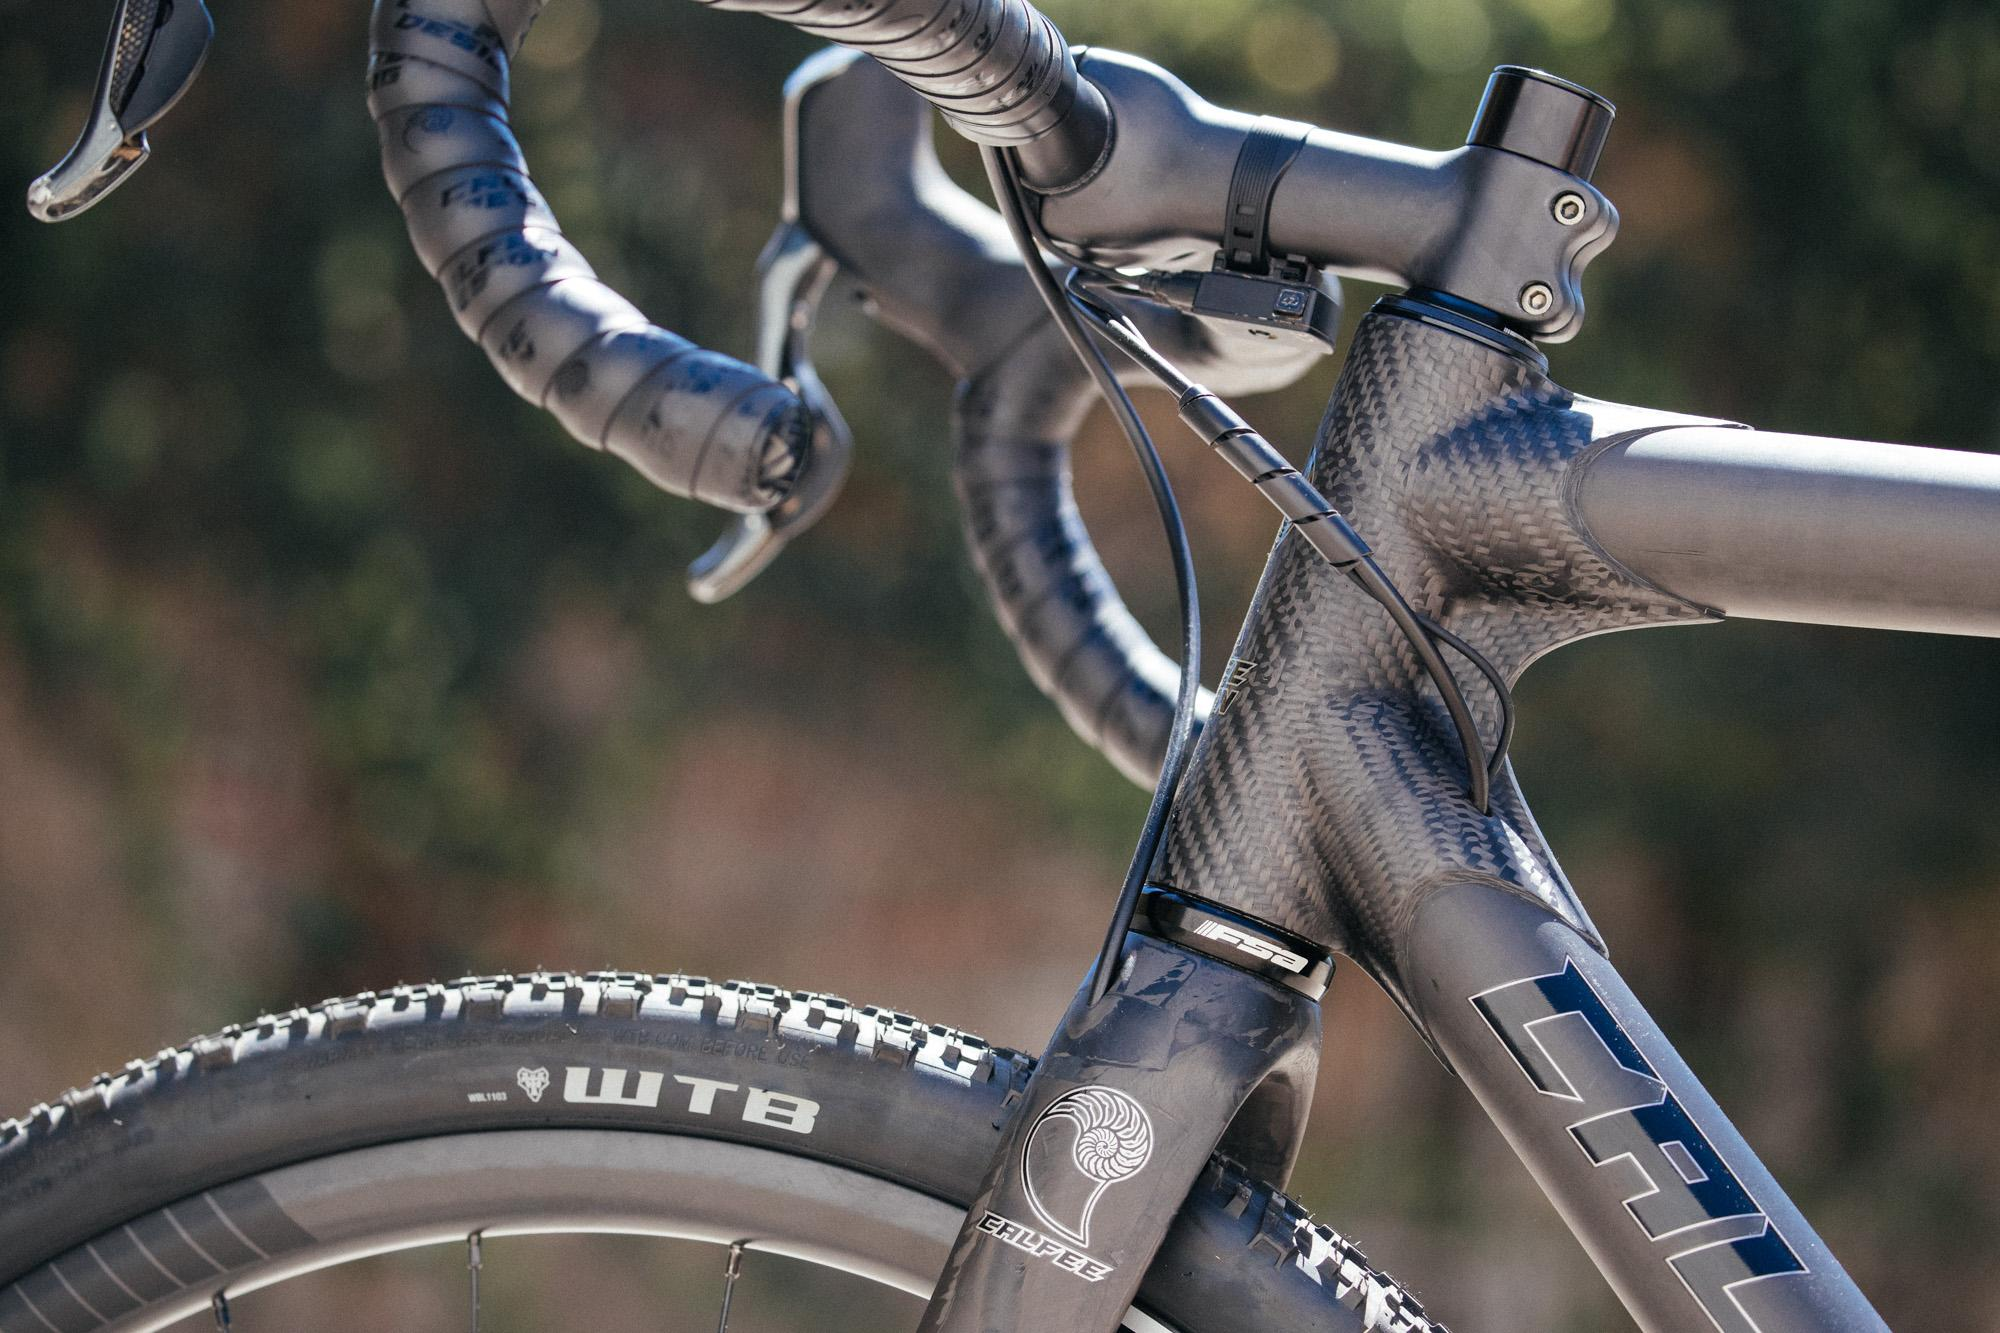 Calfee's Manta RS All-Road is a Smooth Ride for Rough Roads